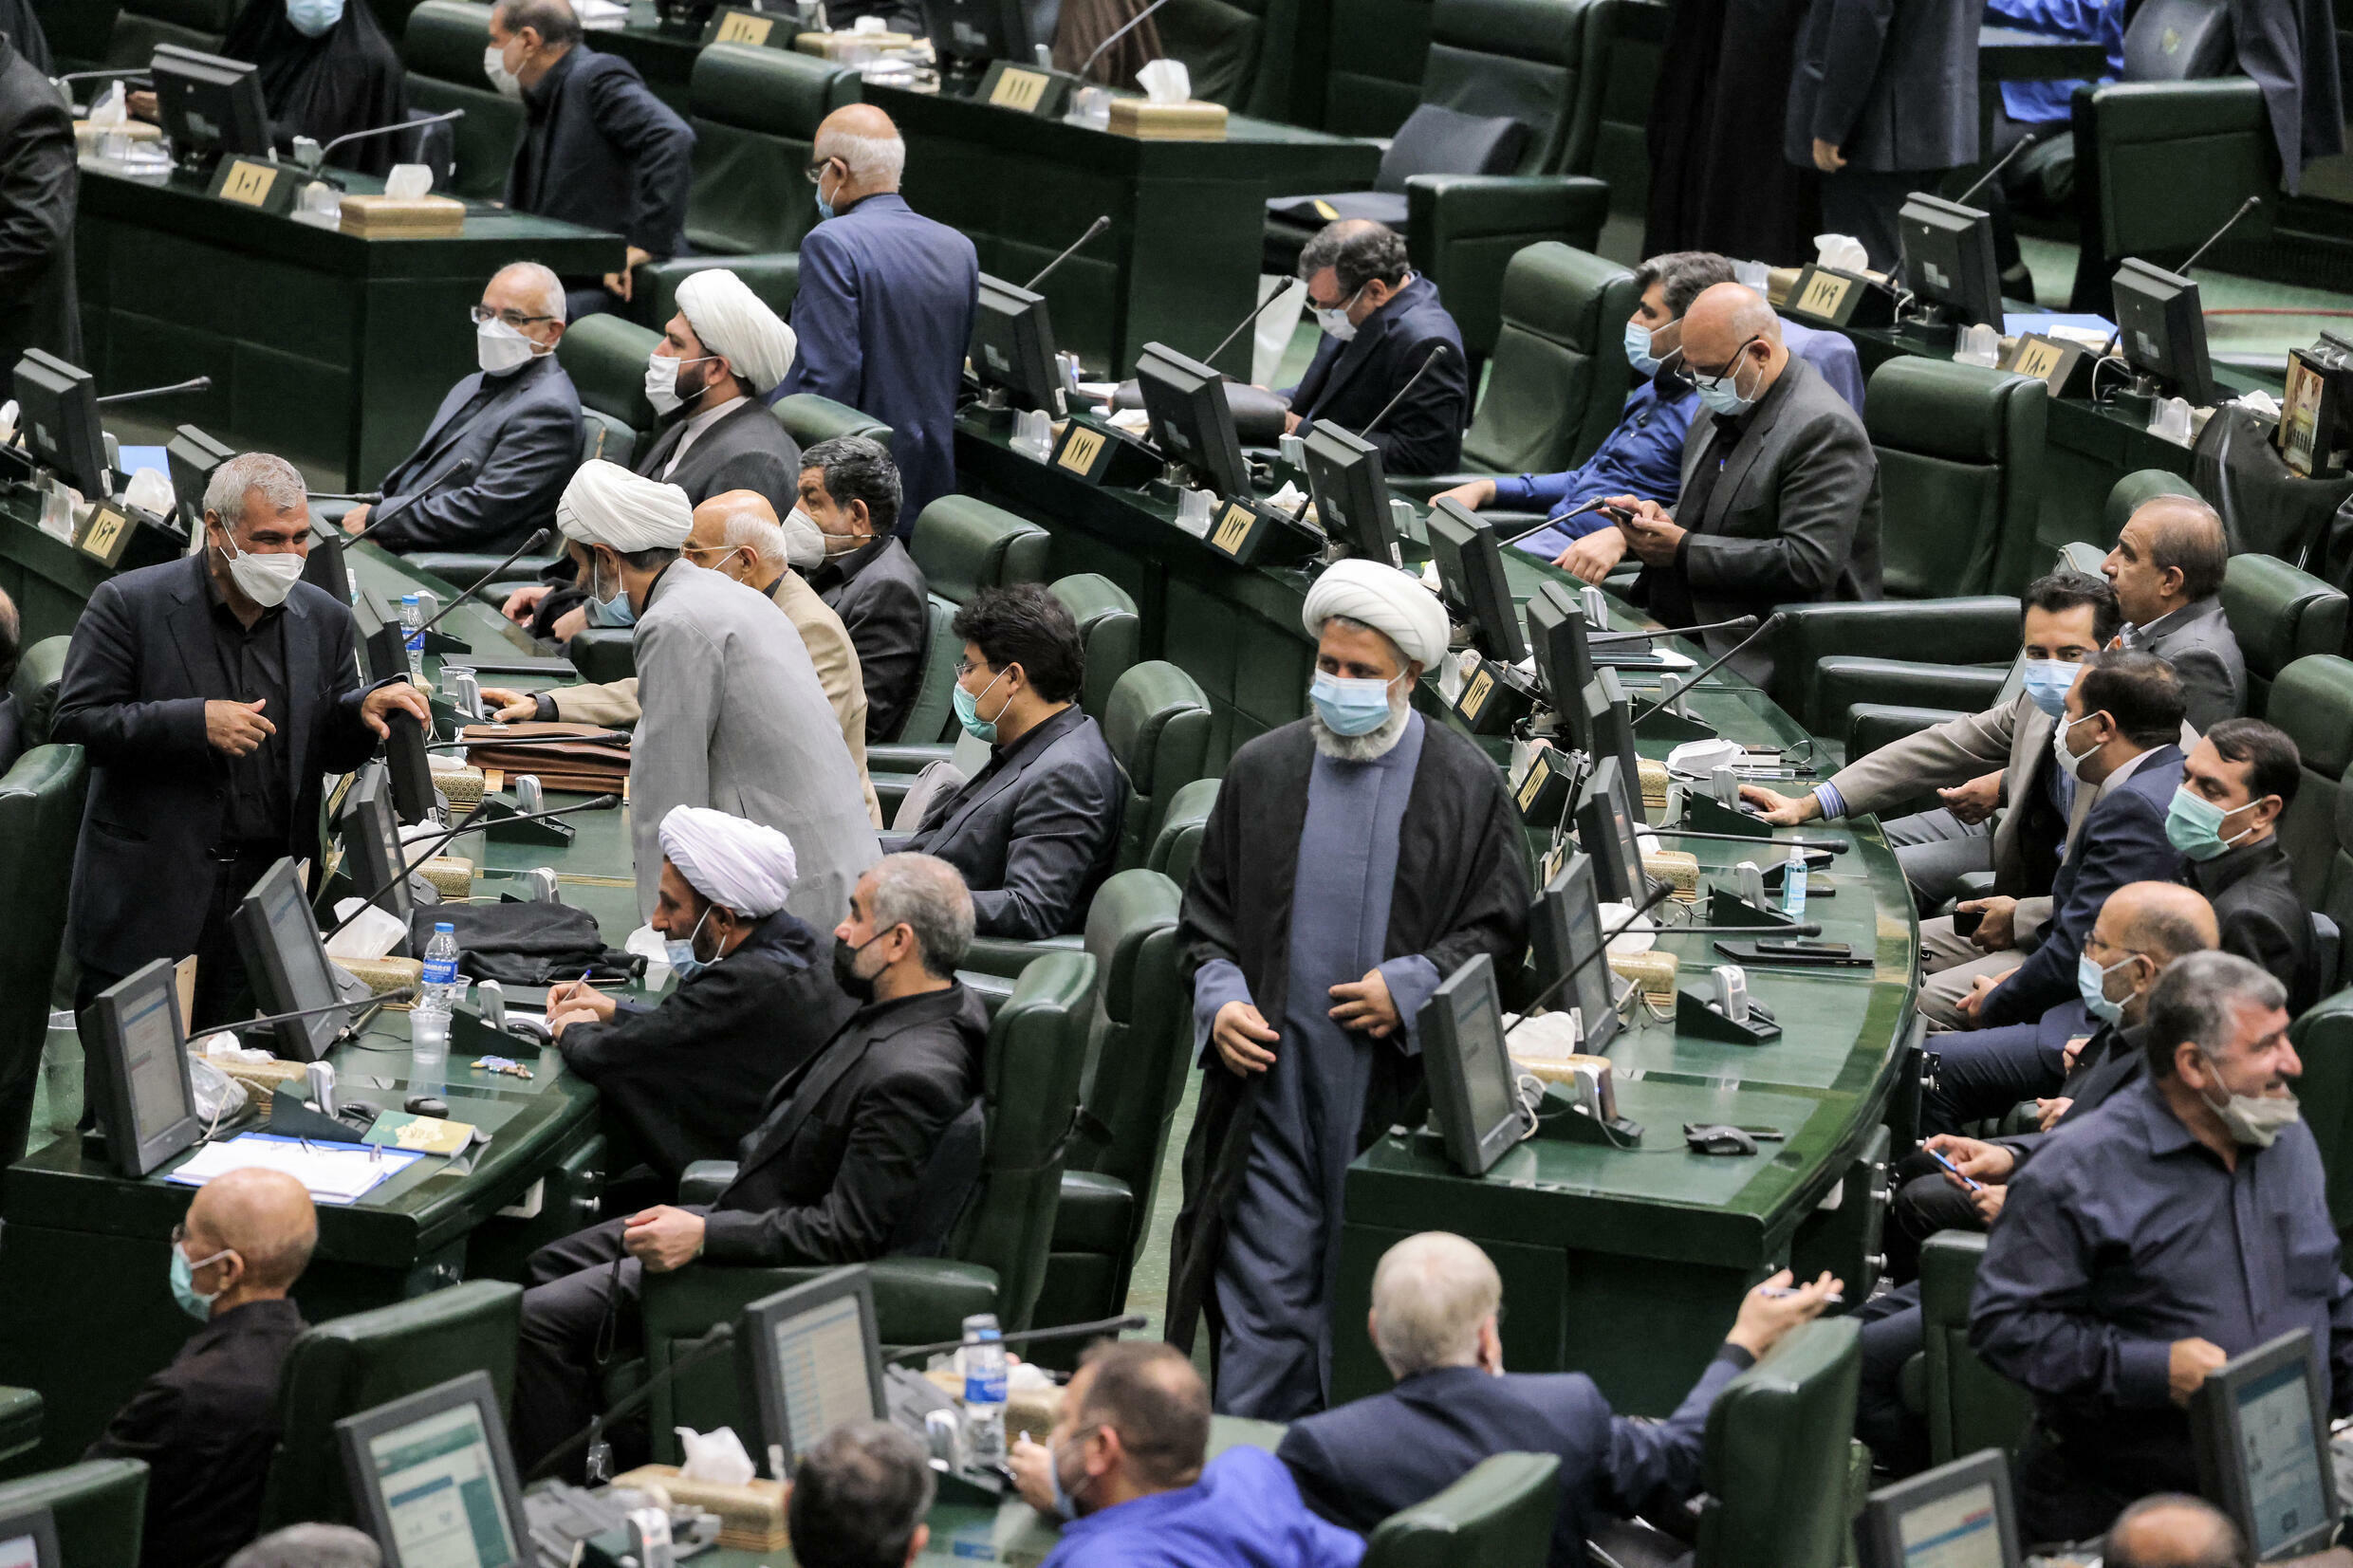 Iranian lawmakers attend a parliamentary session to review the new president's cabinet choices in the capital Tehran on Saturday